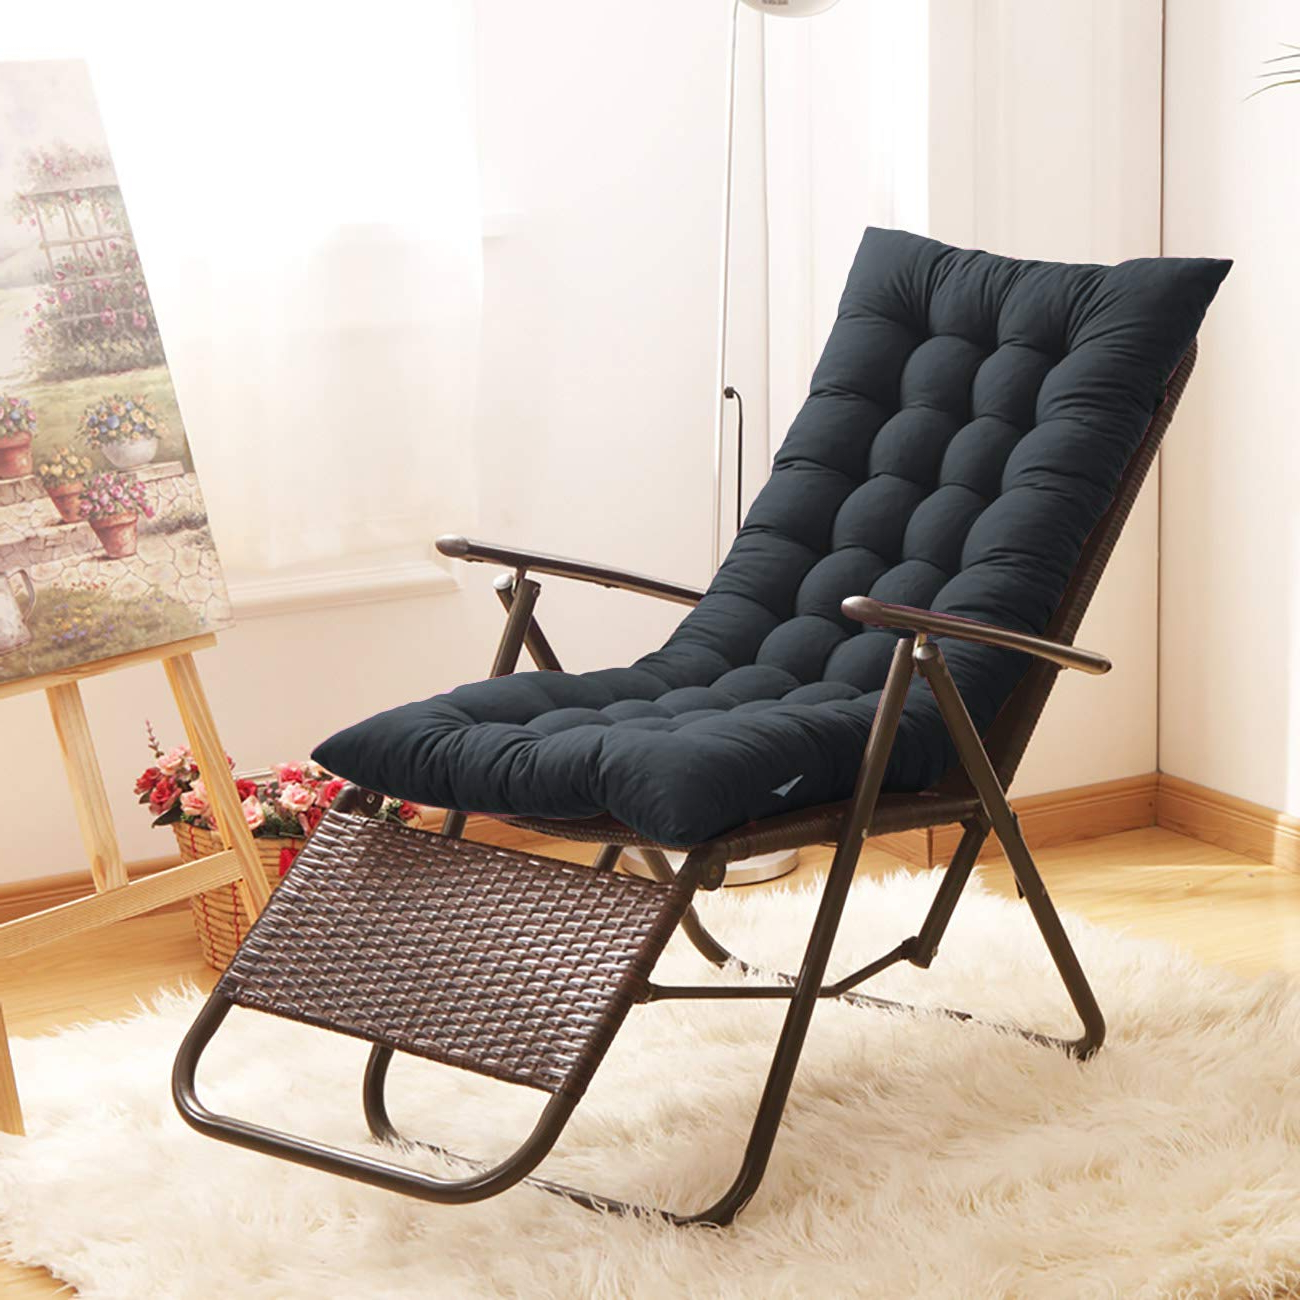 Rocking Benches With Cushions Intended For Favorite Uheng Indoor Outdoor Patio High Seat Back Chair Cushion For Rocking Chair  With 6 Ties, Thick Padded Chaise Lounger Swing Bench Cushion Loveseat (View 18 of 30)